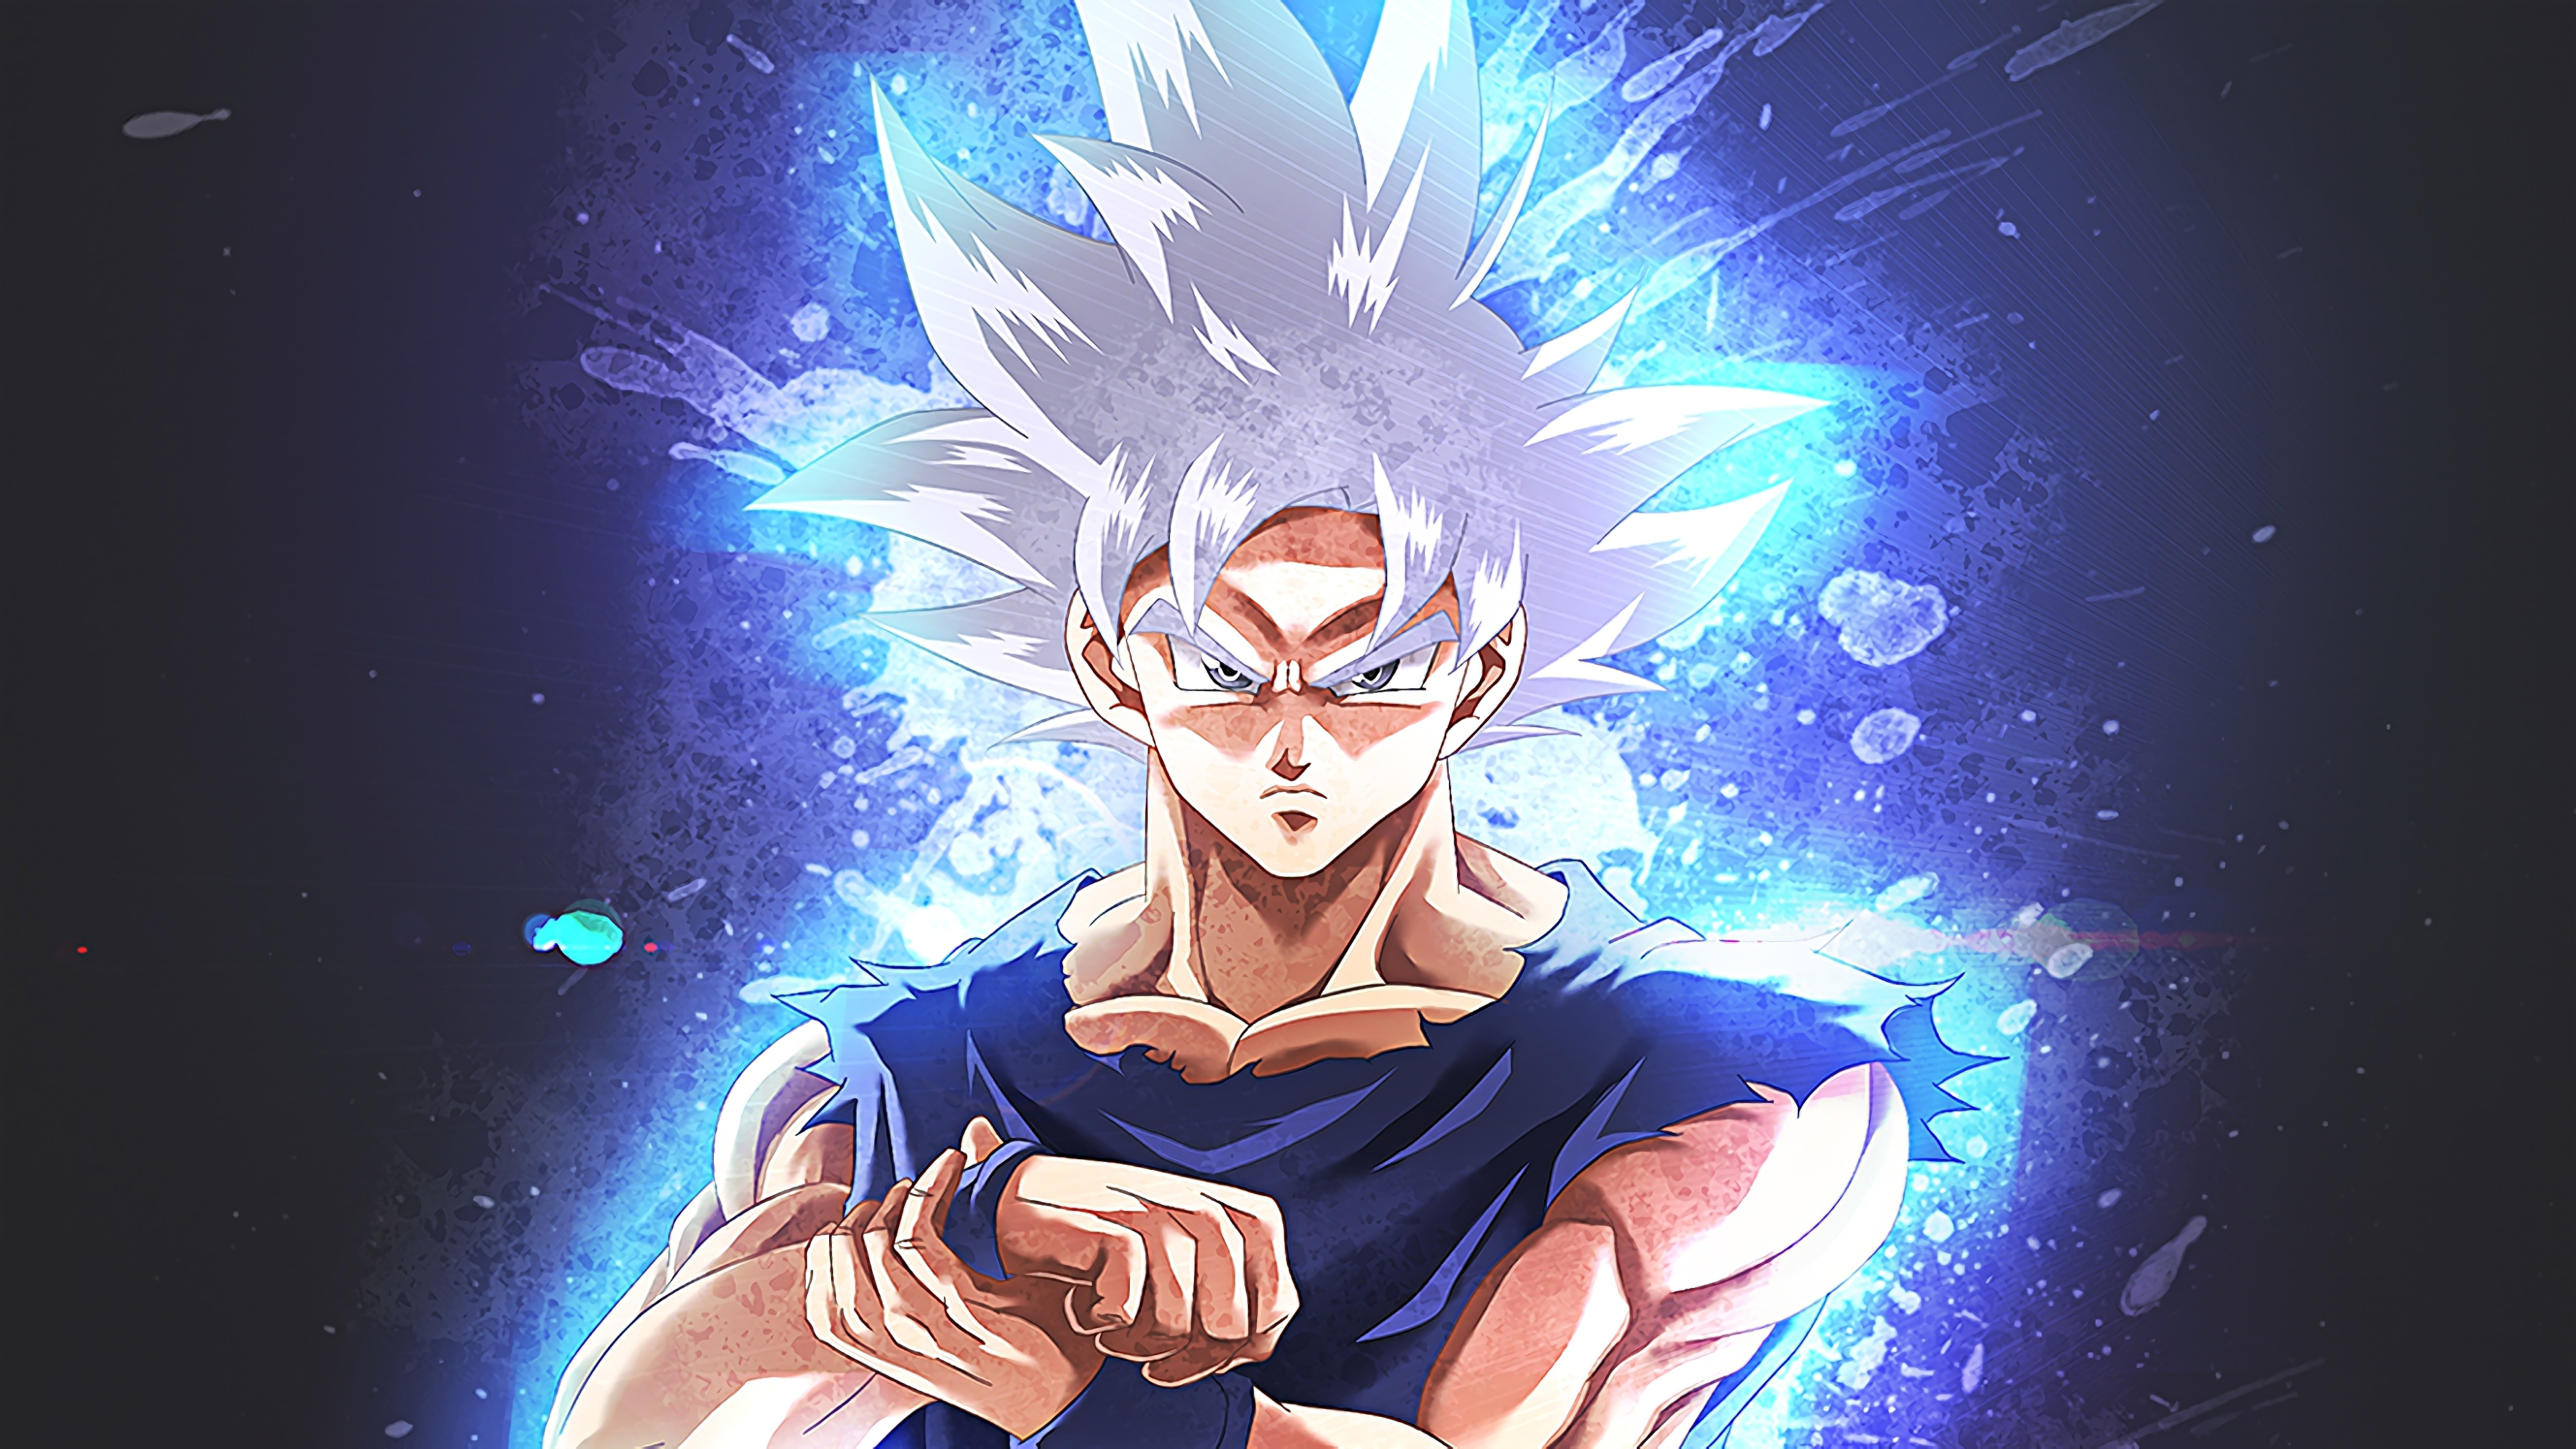 Goku Ultra Instinct 4k 3840x2160 Download Hd Wallpaper Wallpapertip